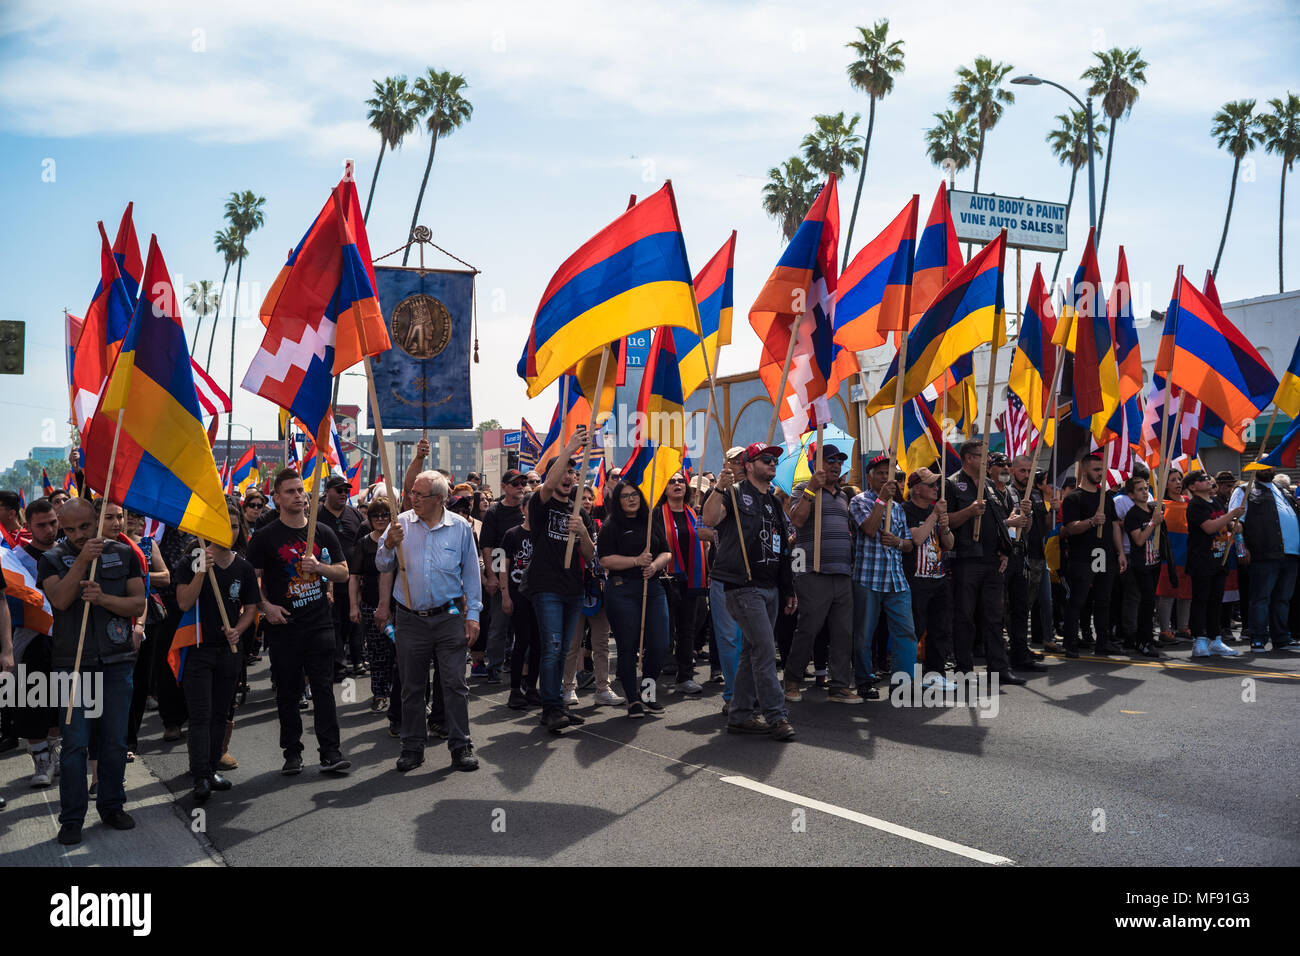 Los Angeles, USA. 24th April 2018. Thousands march in Los Angeles to mark 103rd Anniversary of Armenian Genocide Credit: Nick Savander/Alamy Live News - Stock Image